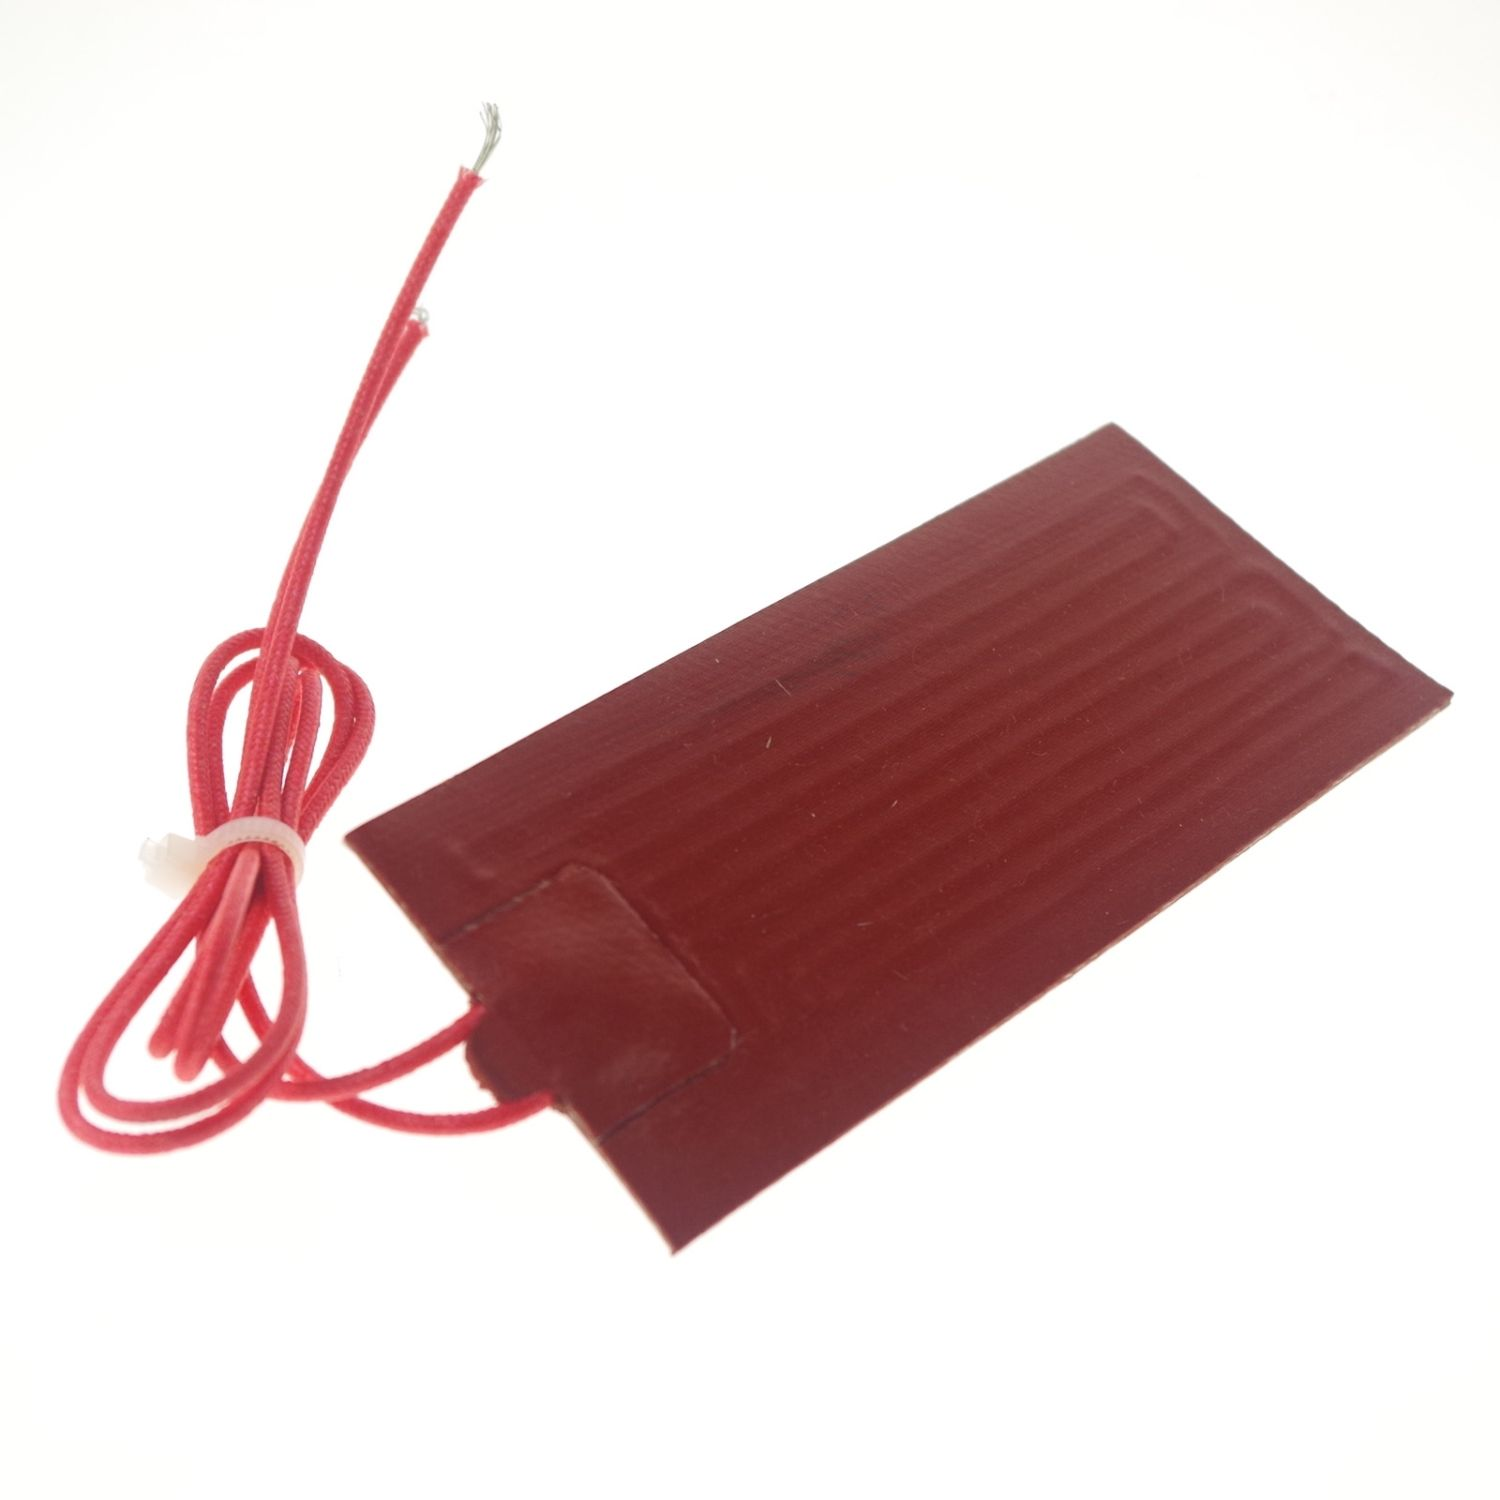 220V AC 300x400mm 400W Rectangle Flexible Waterproof Silicon Heater Pad For Oil Tank Electrical Wires 15x1000mm 75w 200 240v silicon heater strip belt for air conditioner compressor crankcase turbine electrical wires